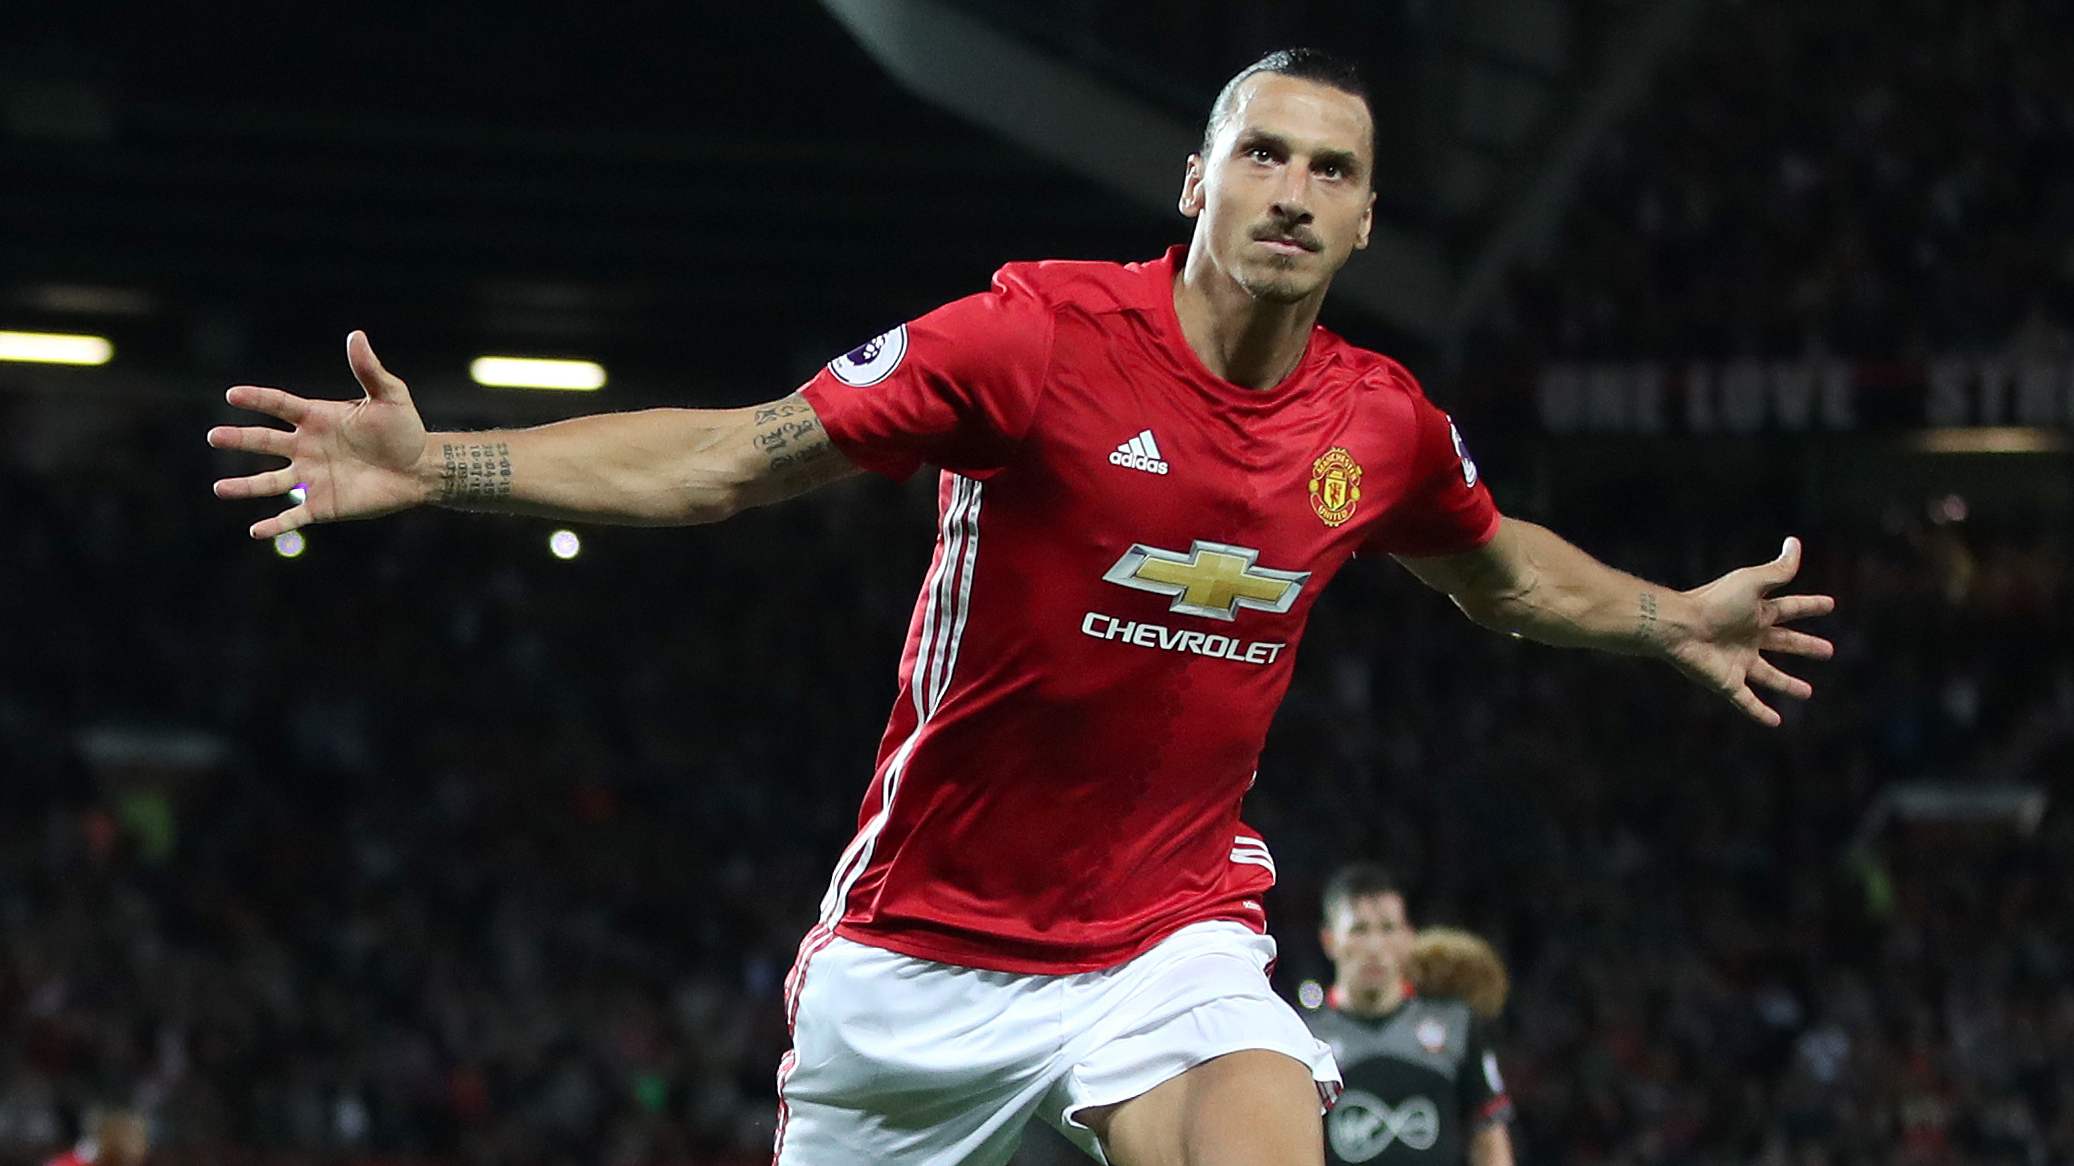 Zlatan Ibrahimovic signs with LA Galaxy, report says